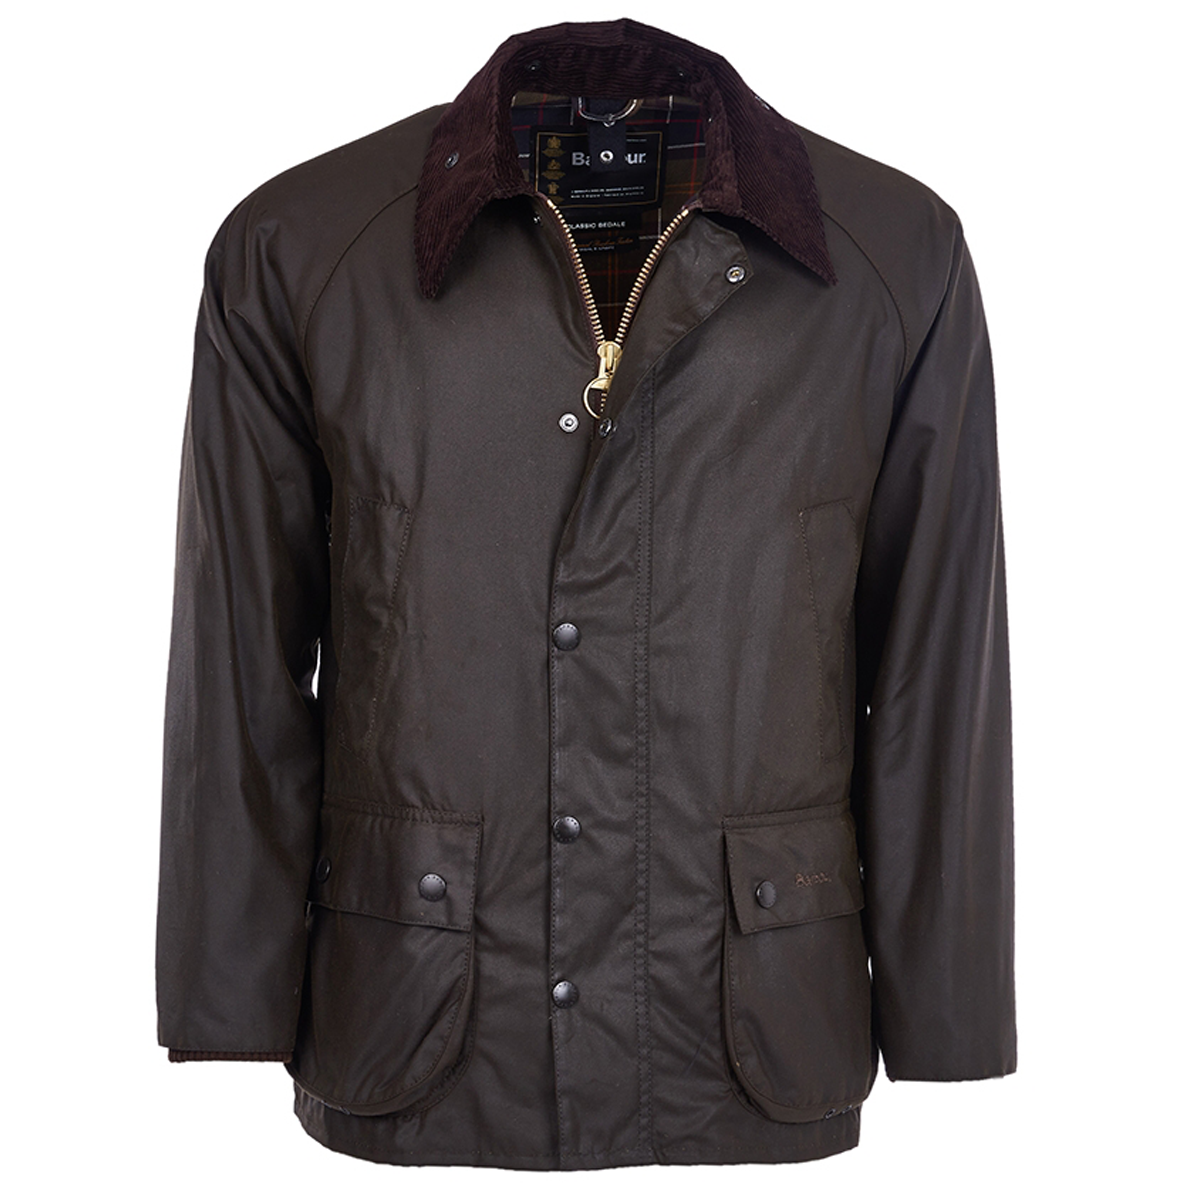 Barbour Bedale Wax Jacket – Olive